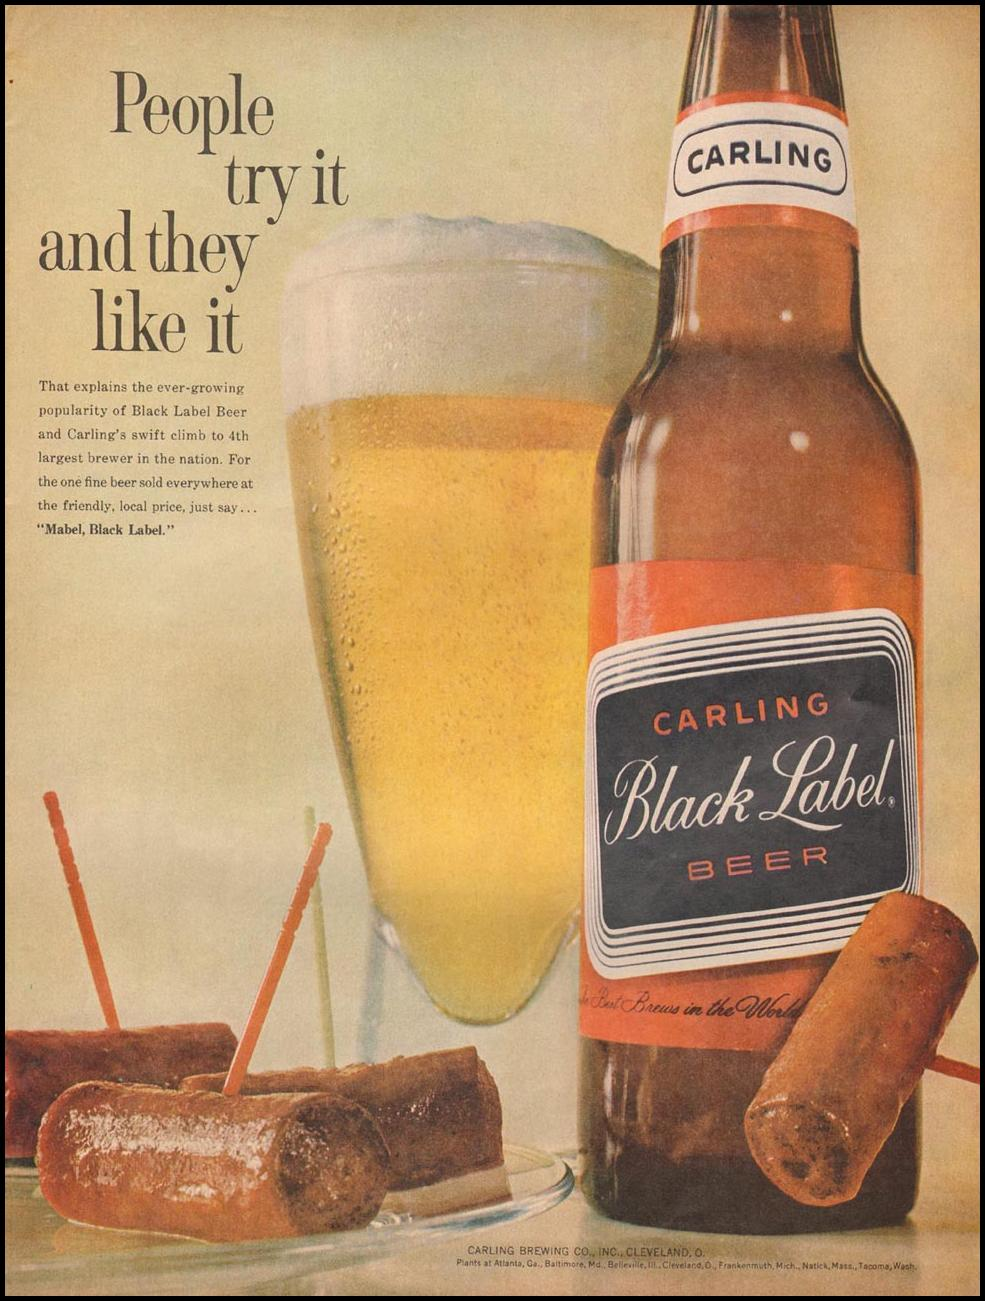 CARLING BLACK LABEL BEER LIFE 03/31/1961